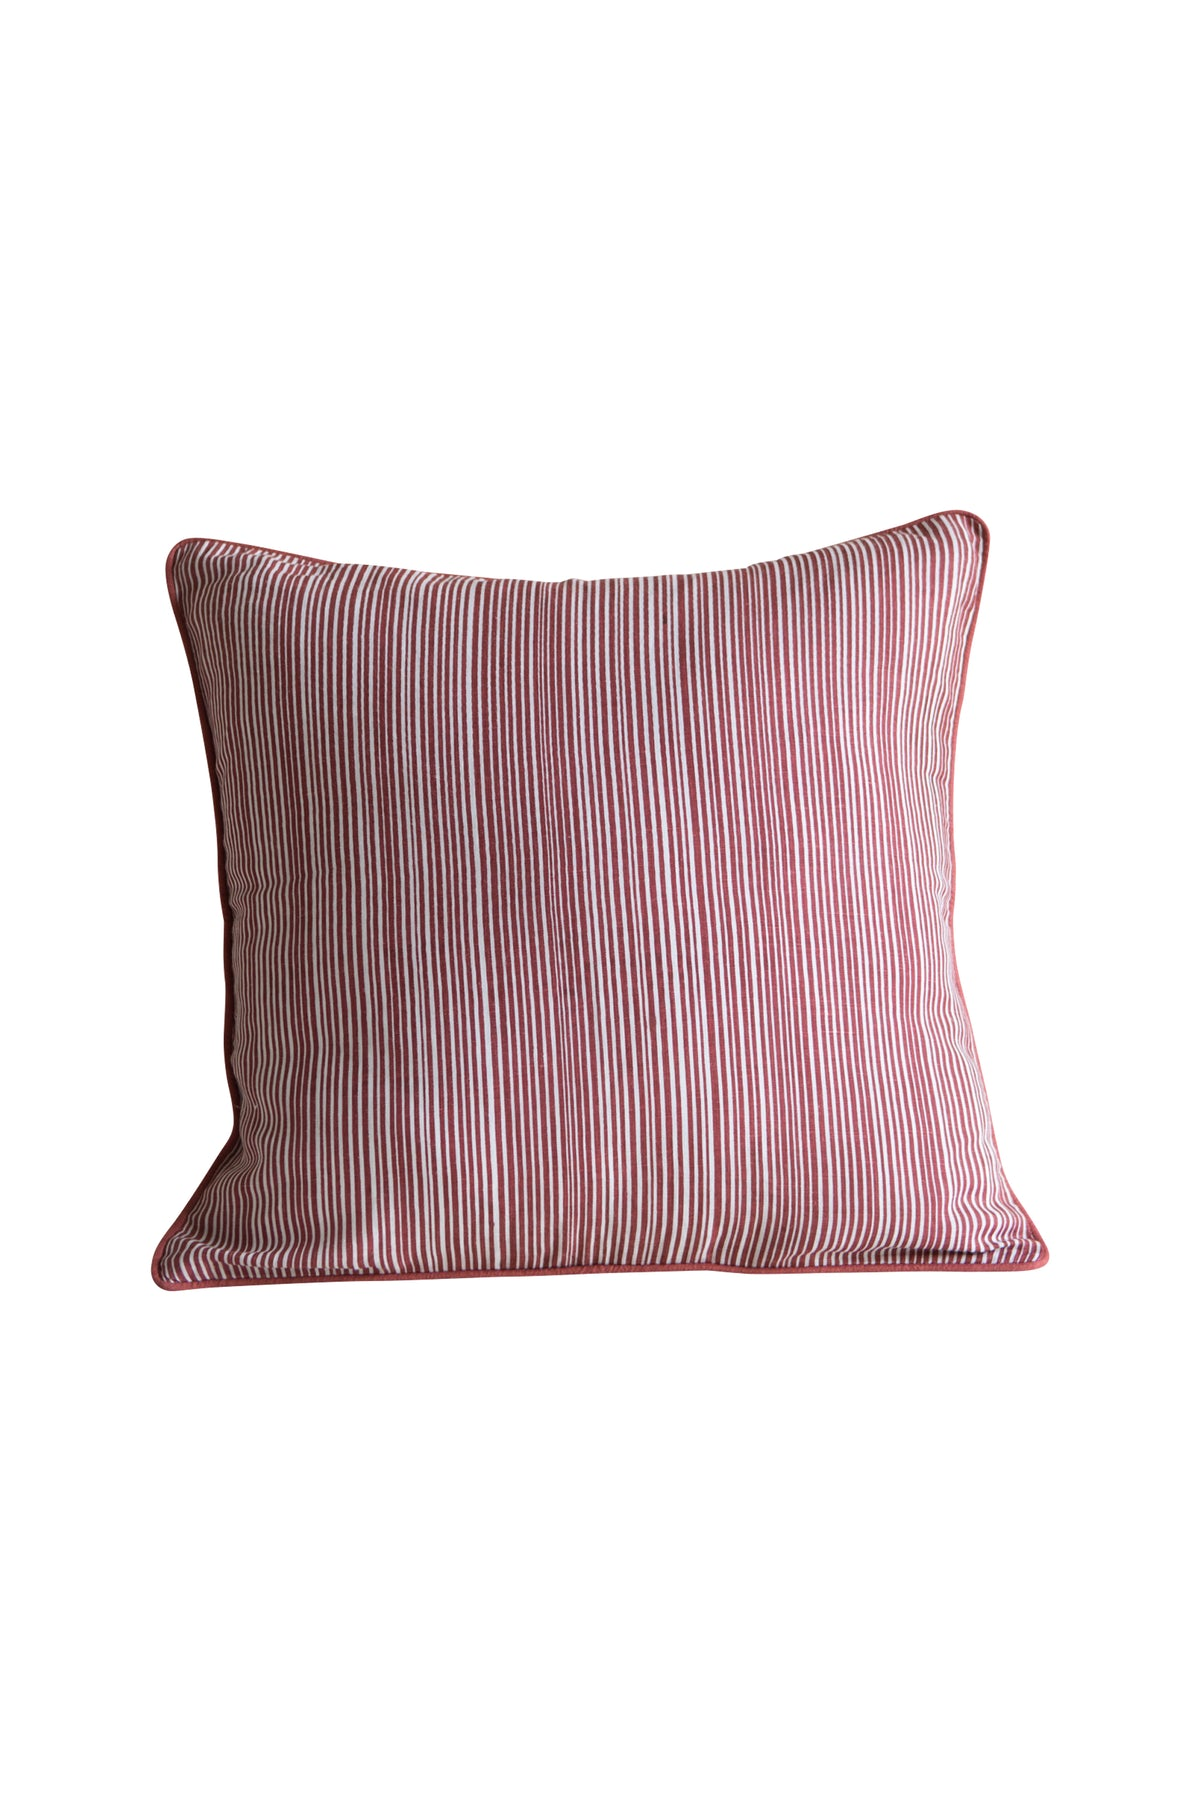 Heimstone x Gabrielle Paris - Cushion in stripes print